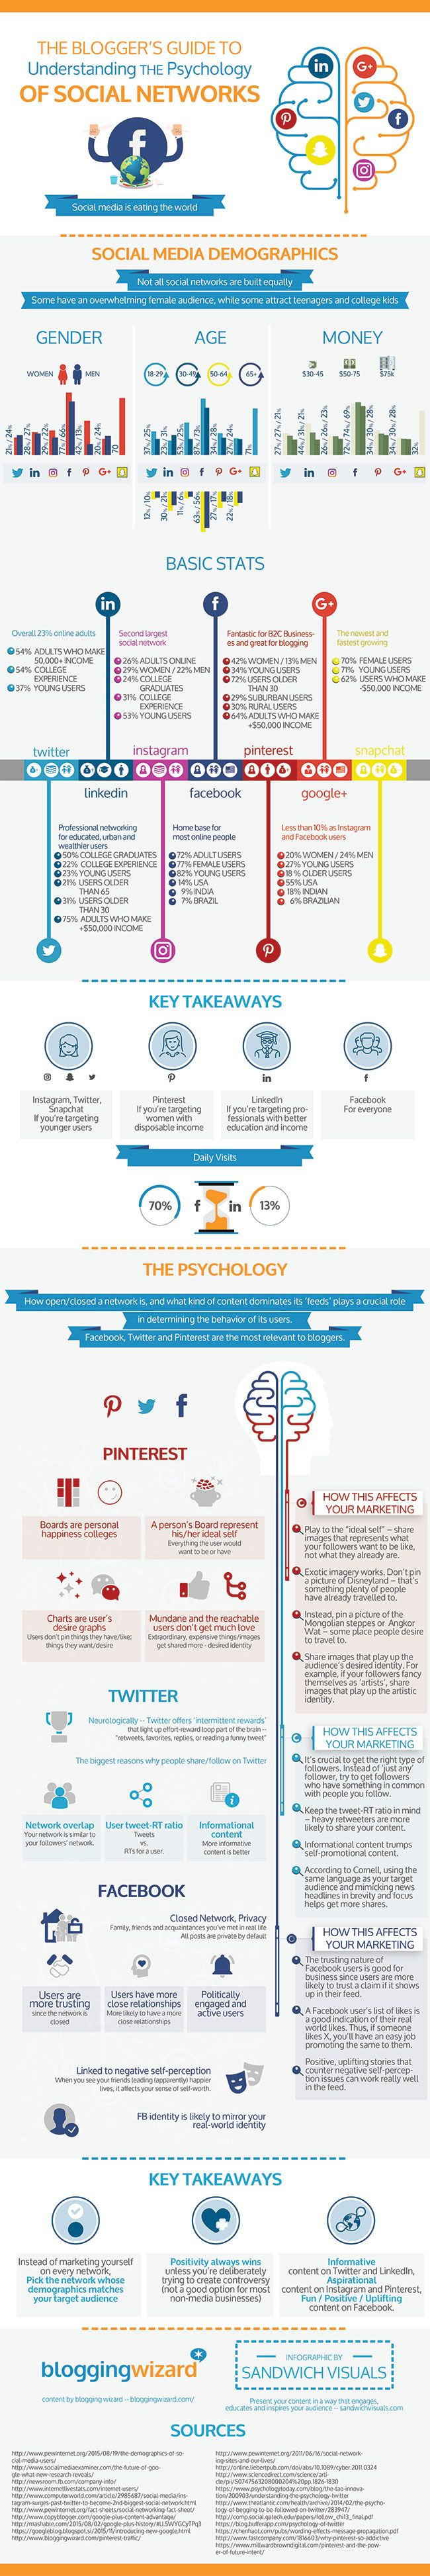 The psychology of social media; Interesting #infographic showing the different social media networks and the psychology behind them.